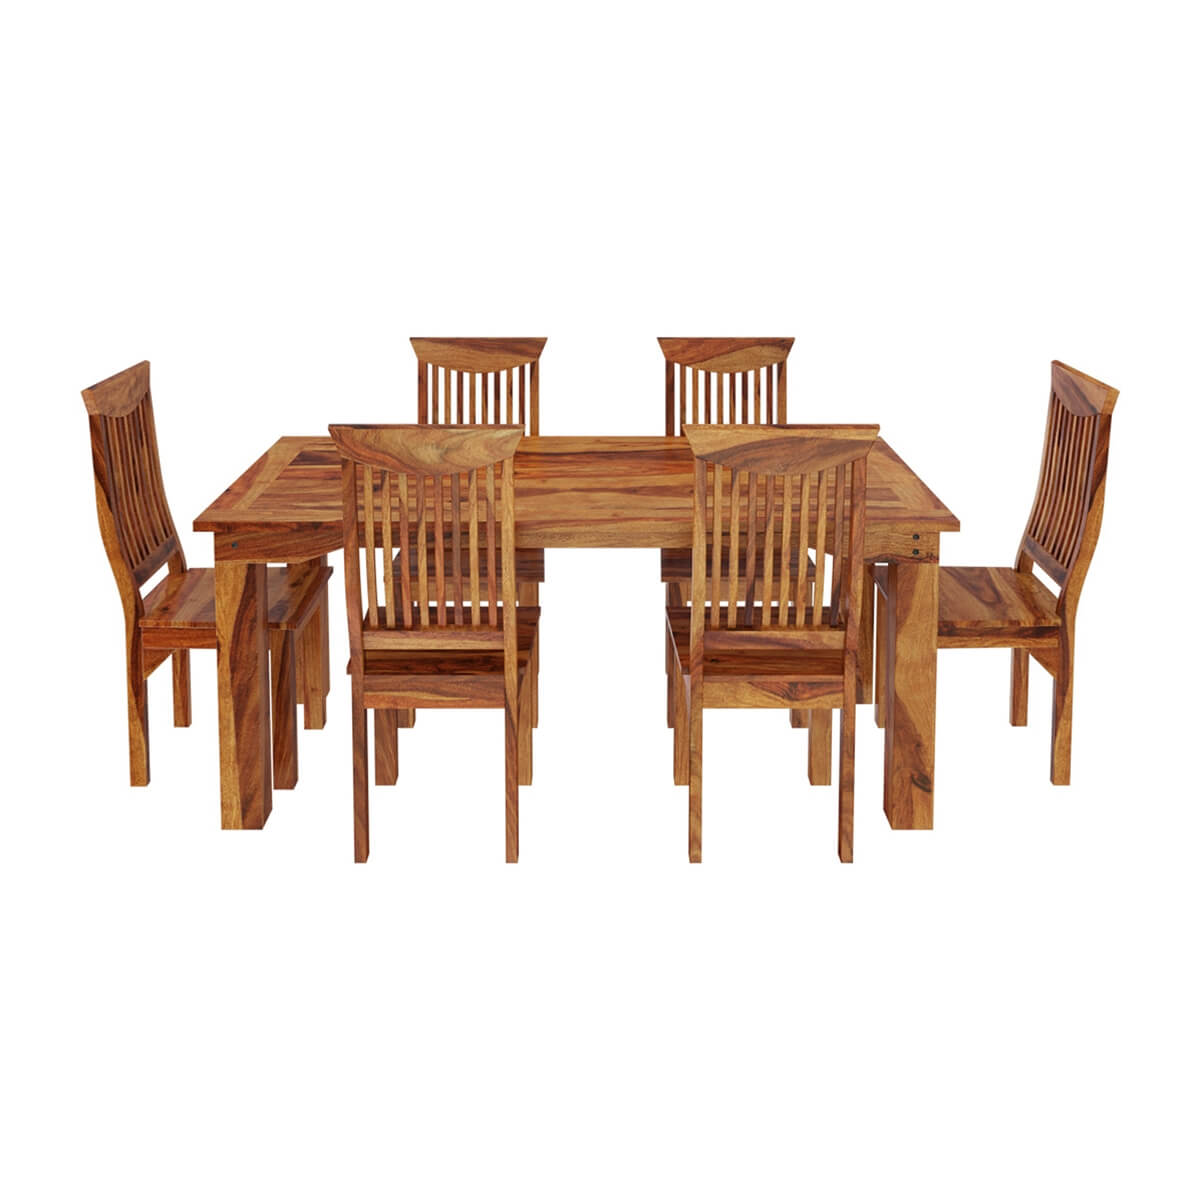 Idaho modern rustic solid wood dining table chair set for Wood modern dining table